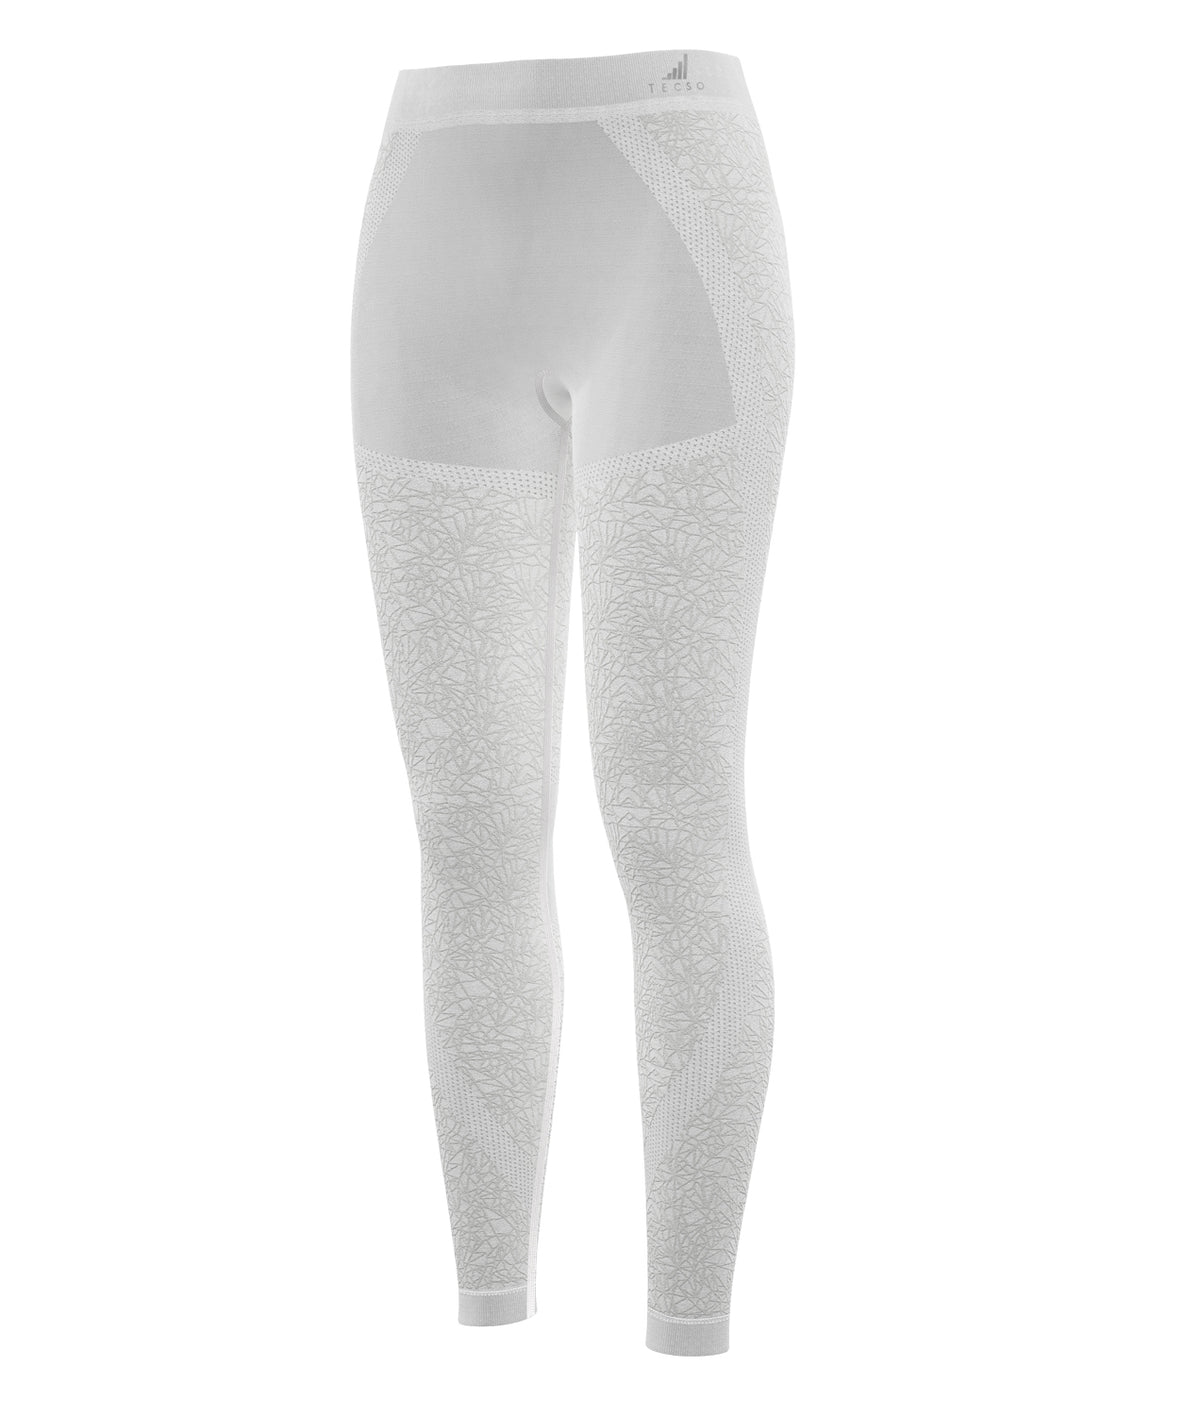 K-DRY TIGHTS - WOMAN